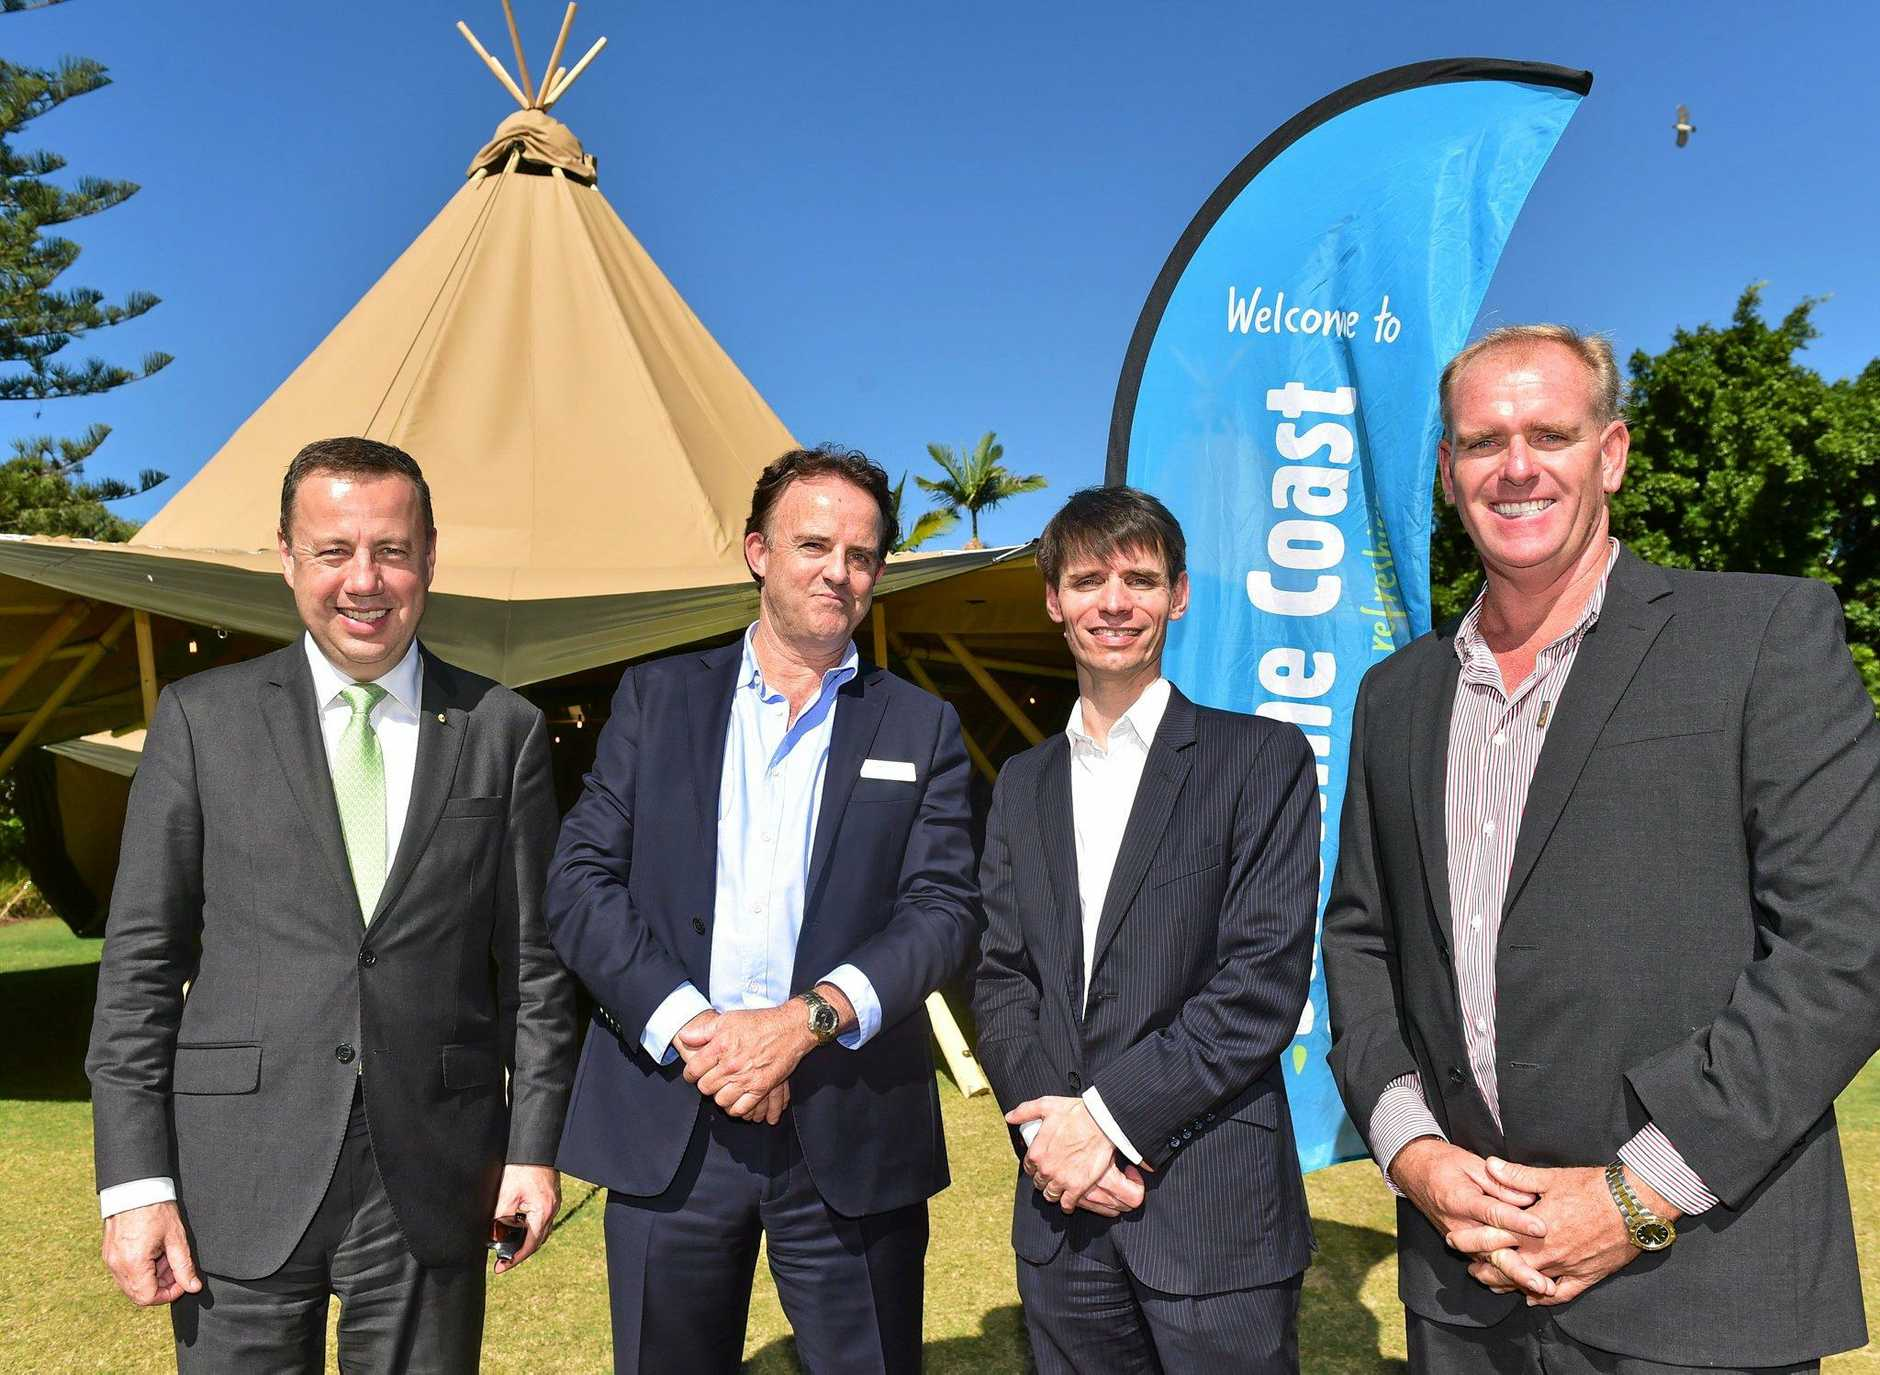 The Australian Event Awards will be held here for the next three years. (from left) CEO of Opera Australia, Craig Hassall, CEO of Visit Sunshine Coast, Simon Latchford, Managing Director of Australian Event Awards, Ian Steigrad and Cr Jason O'Pray.